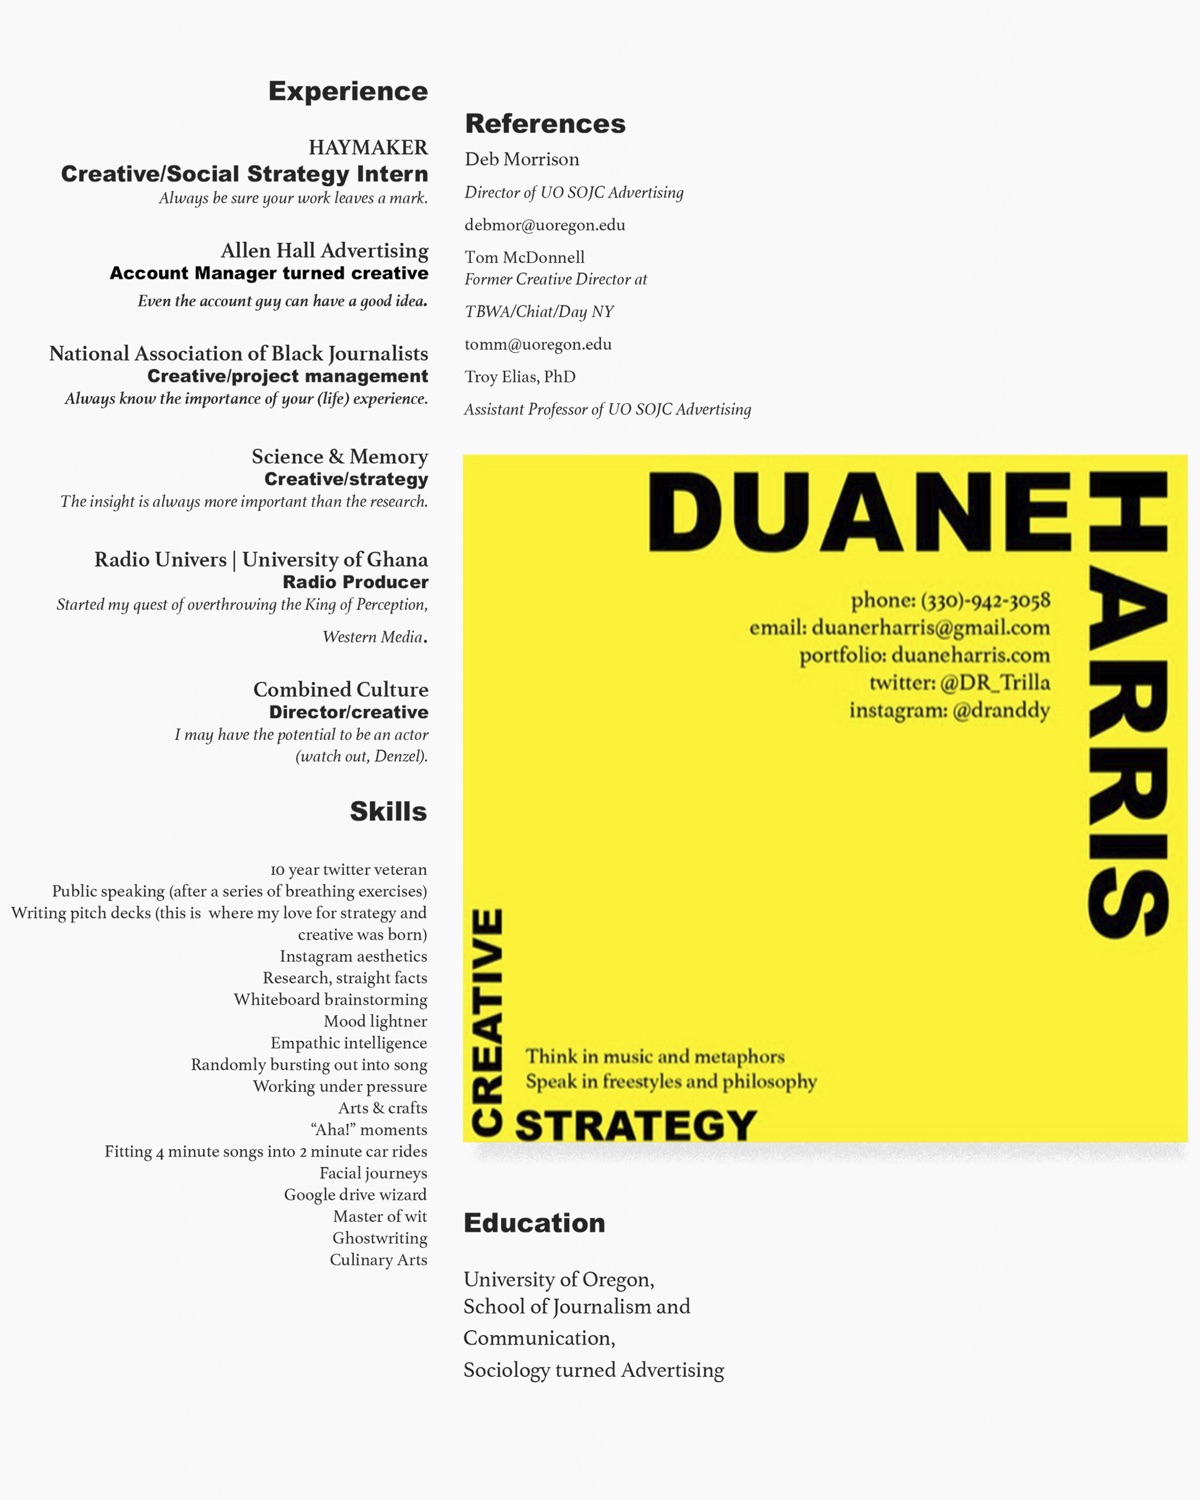 HarrisDuane_Resume19 2.jpg